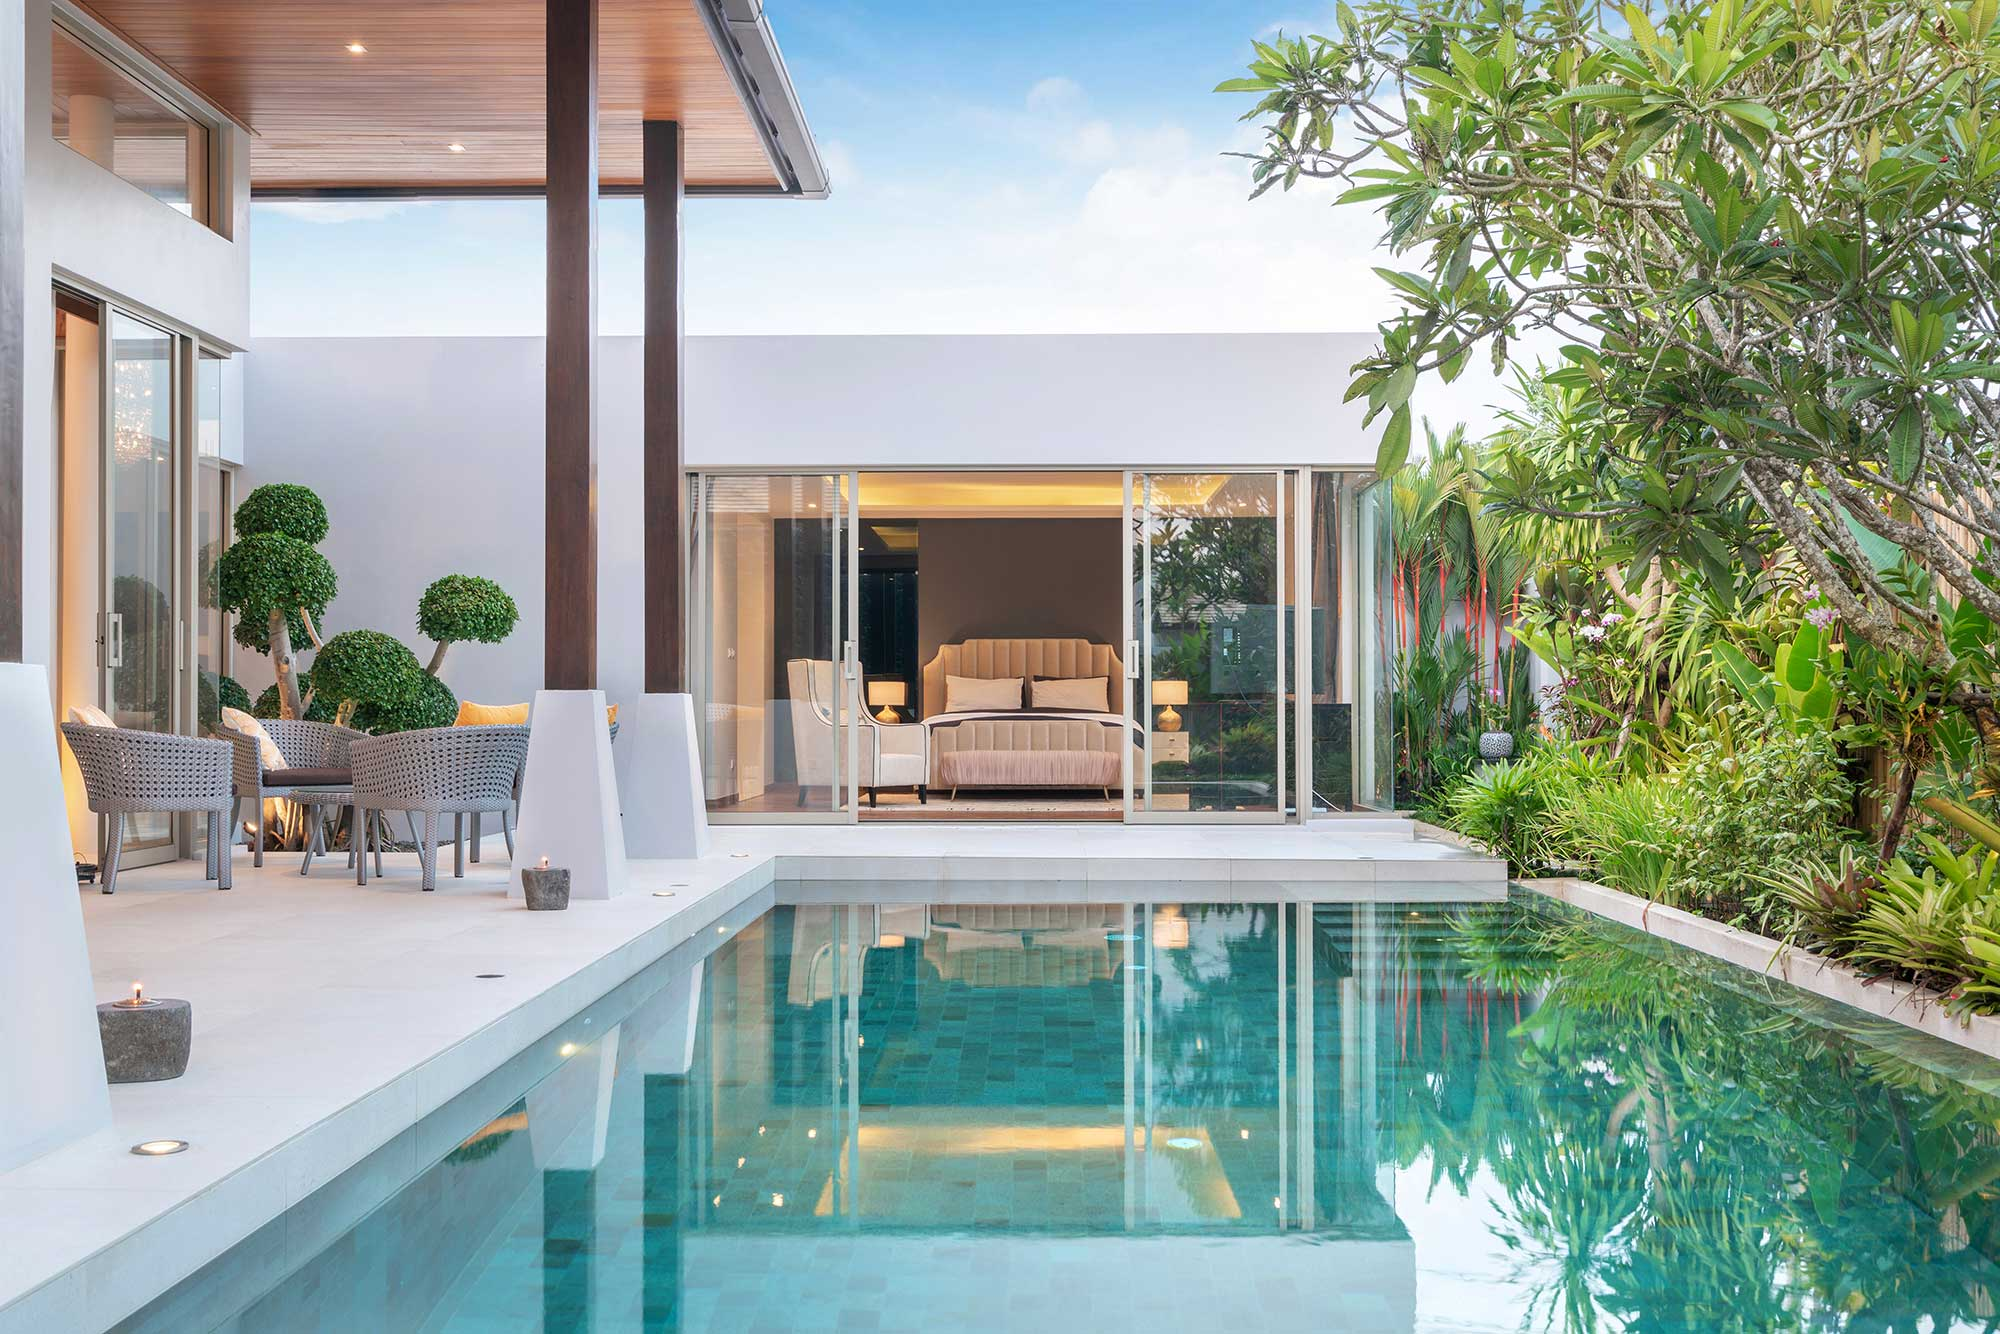 Refining Digital Sales for a Luxury Home Builder